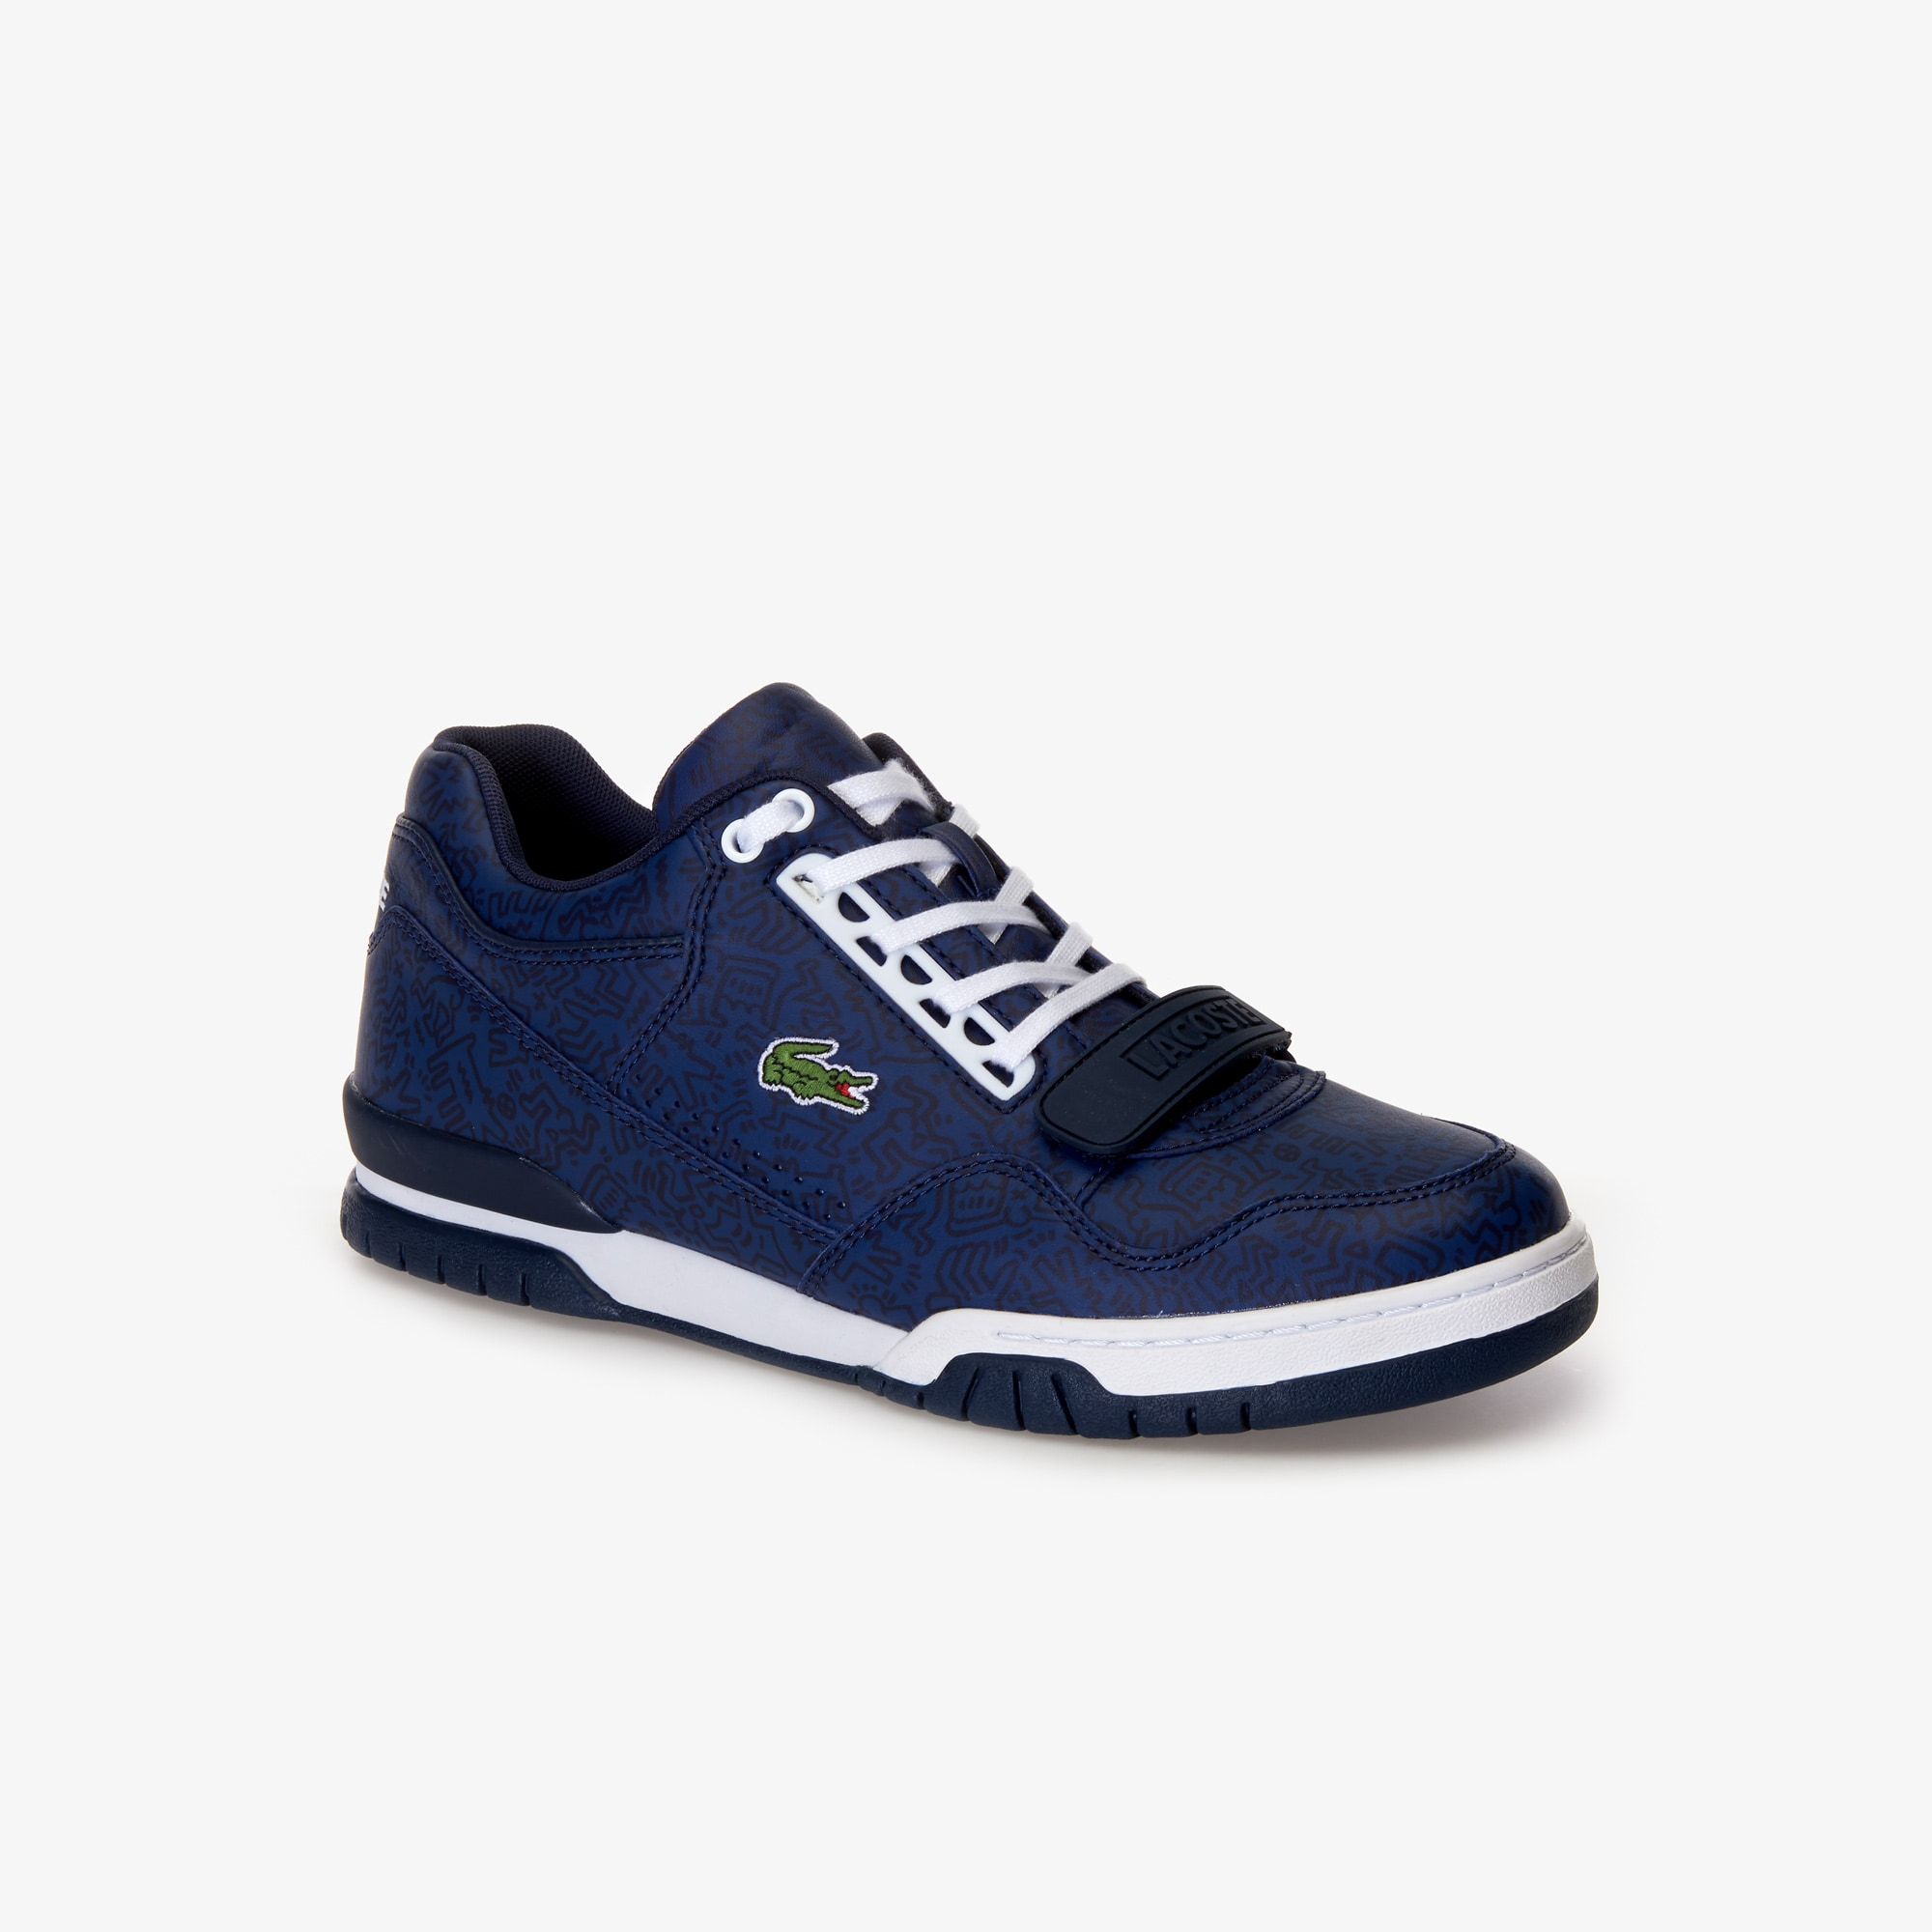 8432039c78 Sneakers homme, baskets et chaussures homme   LACOSTE